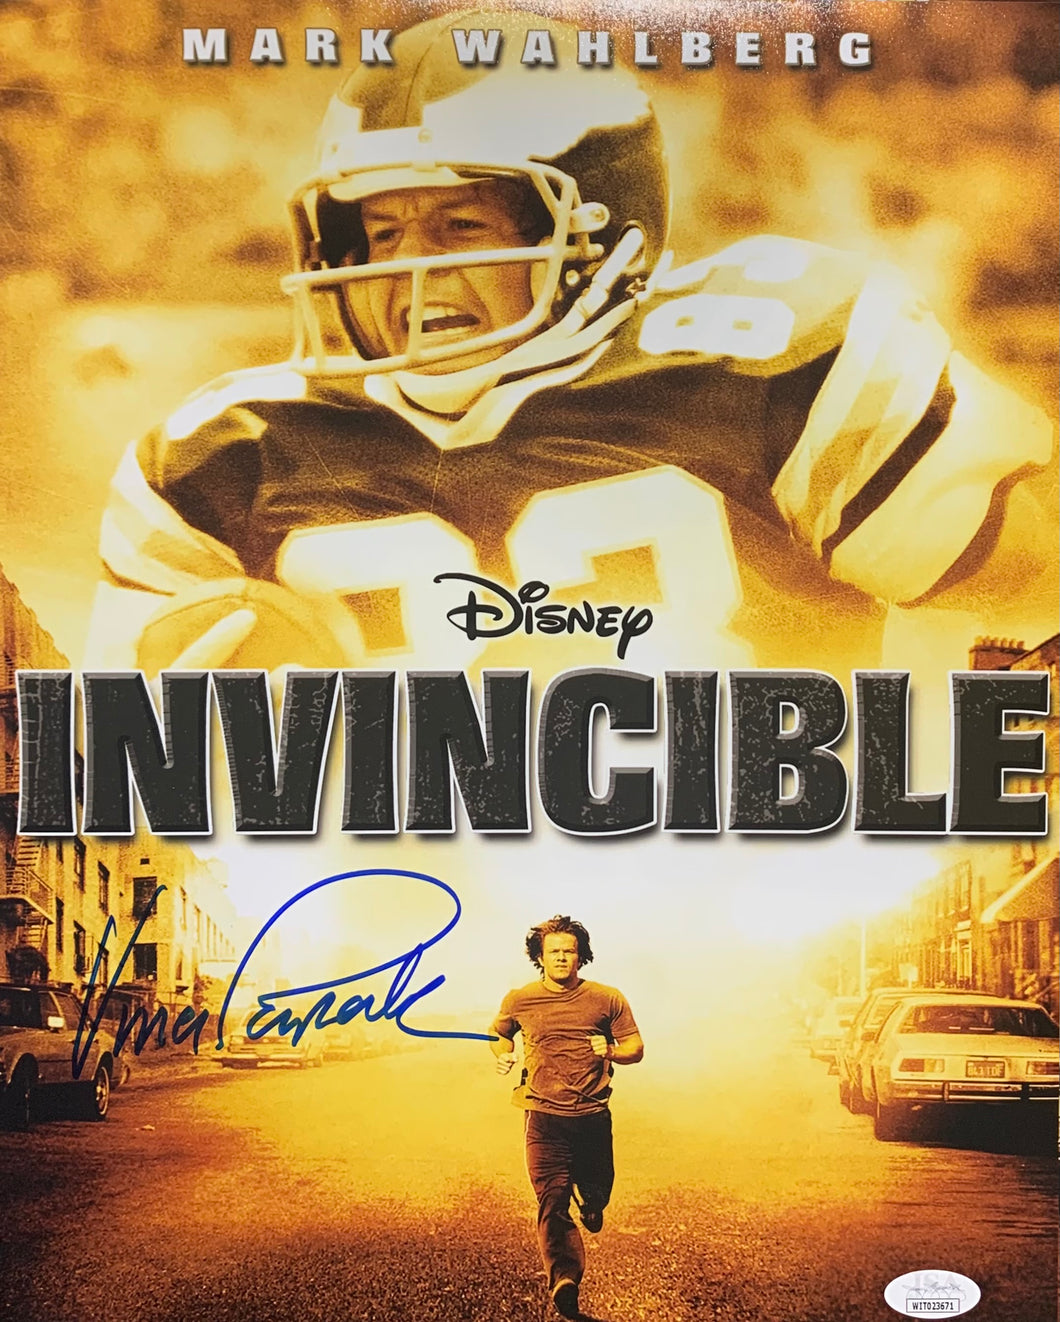 Vince Papale Philadelphia Eagles Signed 11x14 Movie Poster With JSA COA